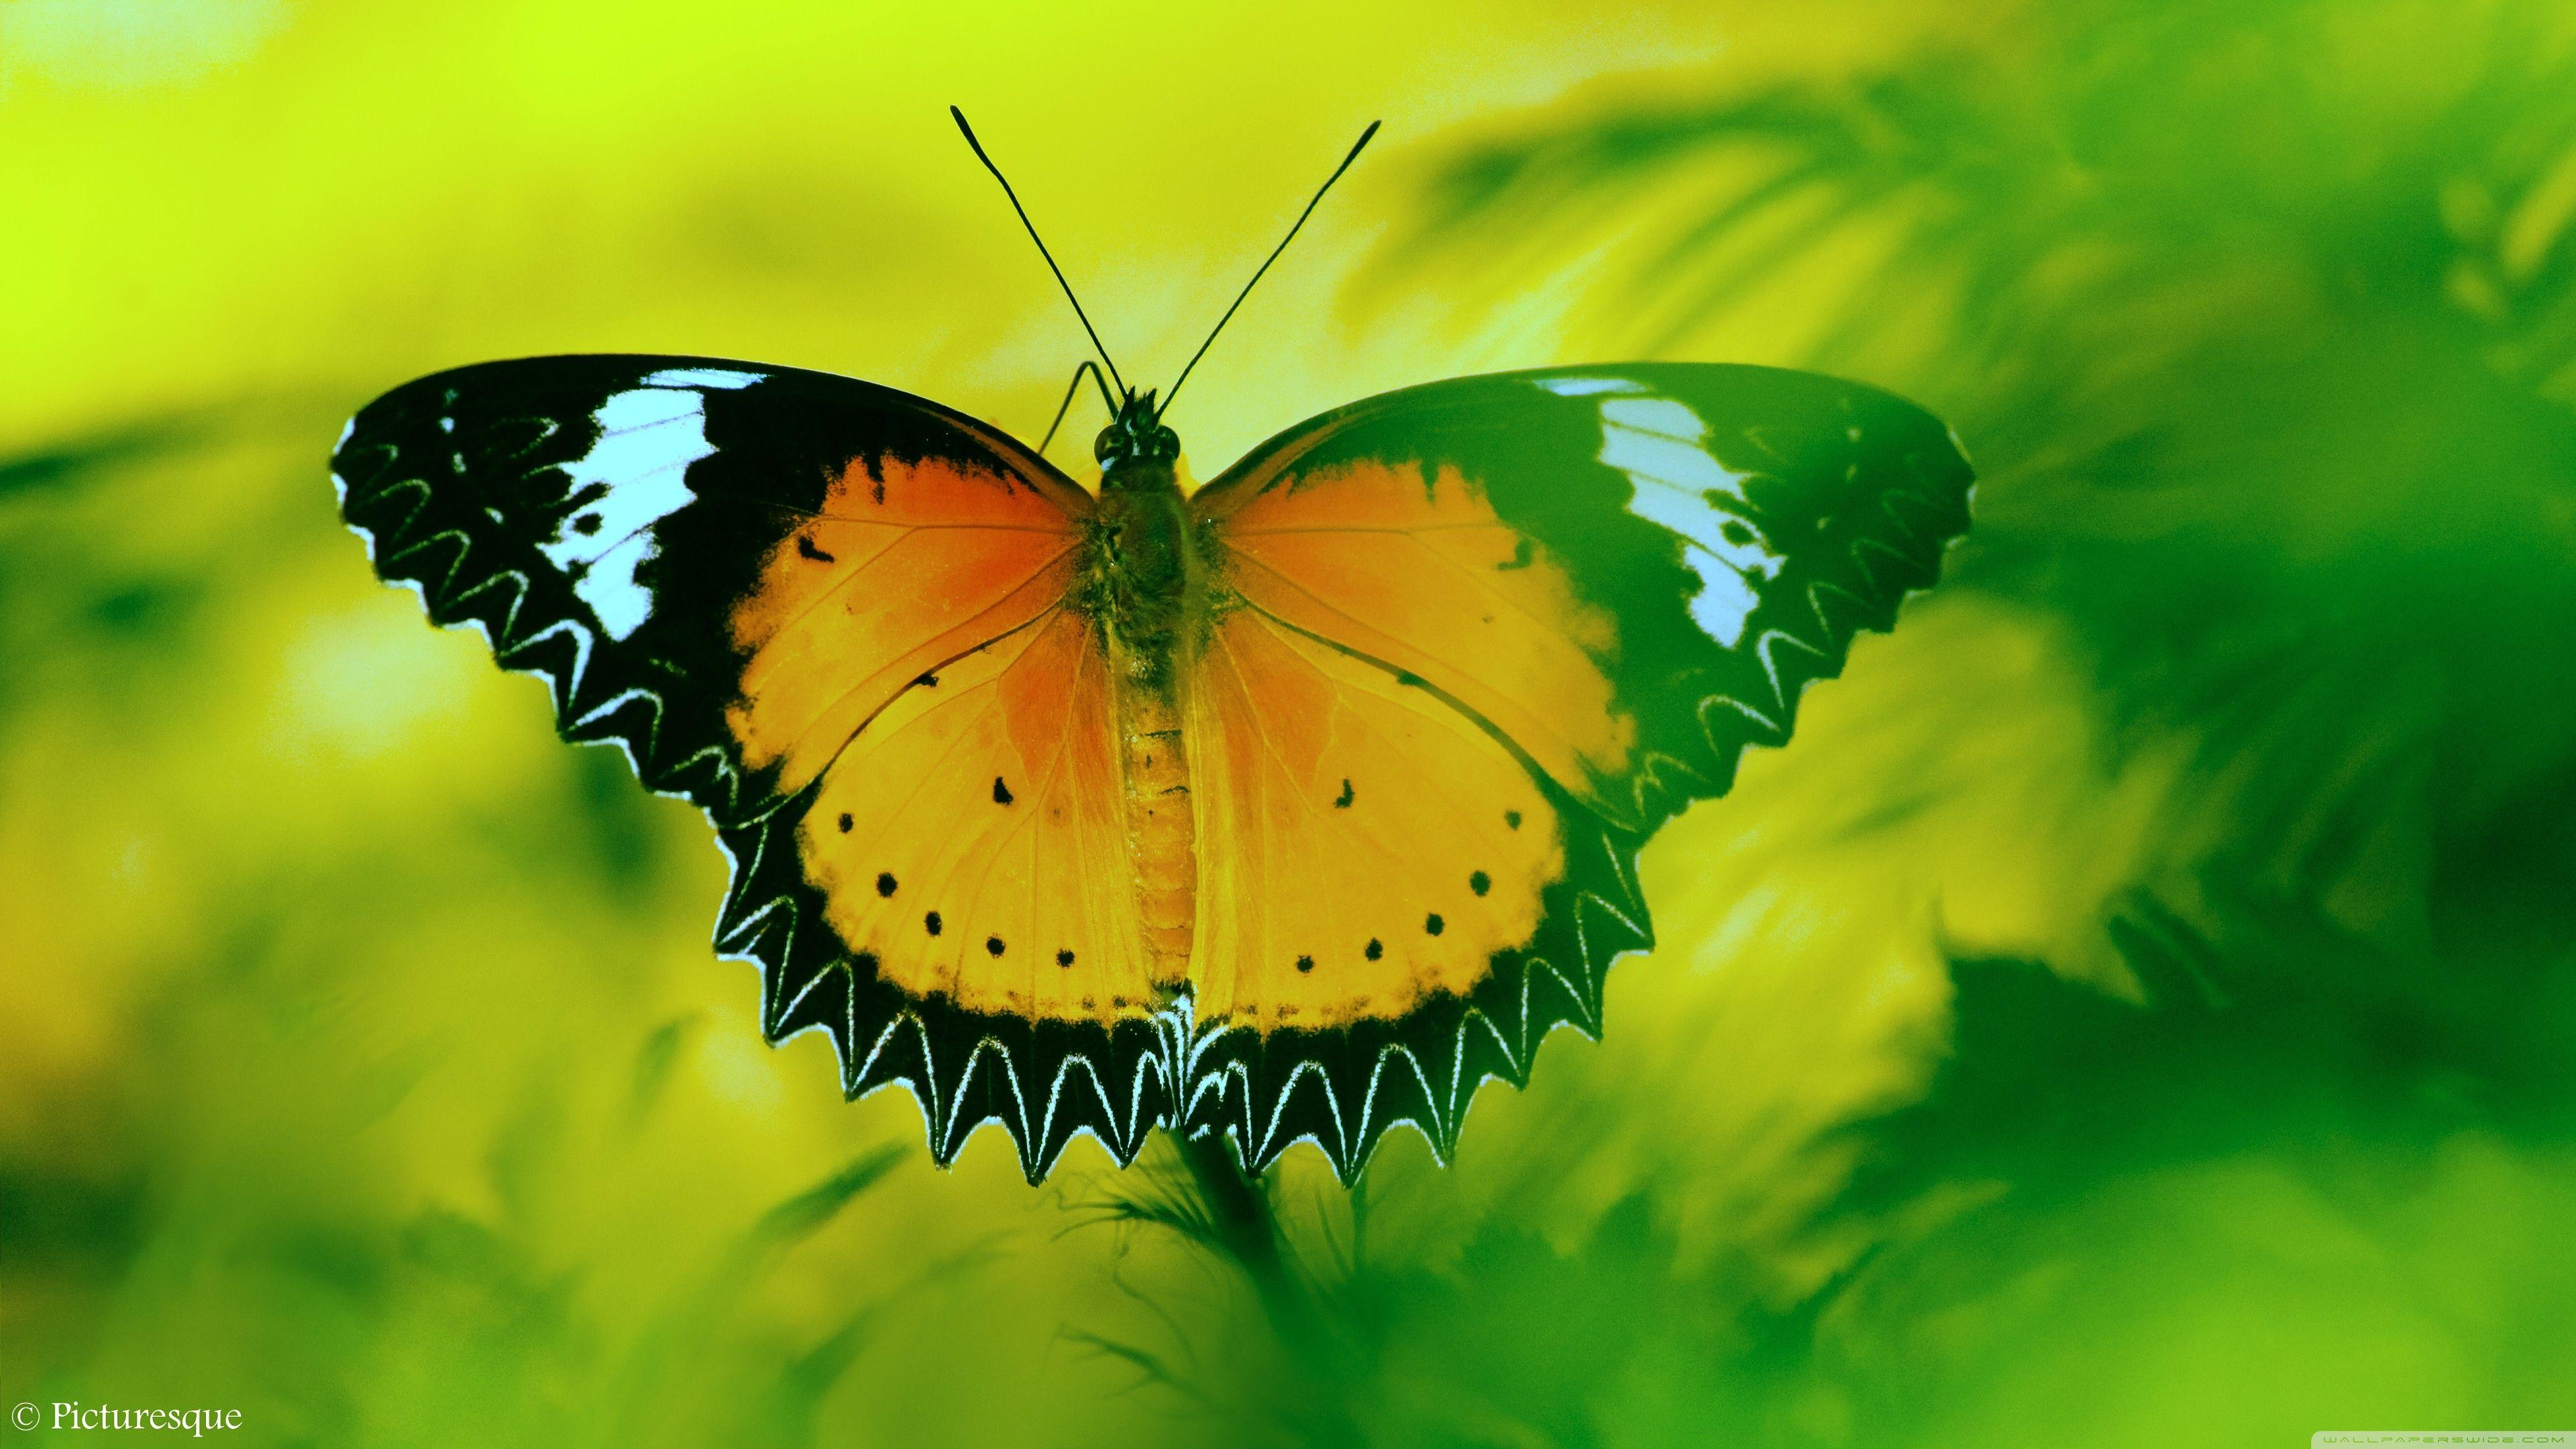 Butterfly 4K Wallpapers - Wallpaper Cave